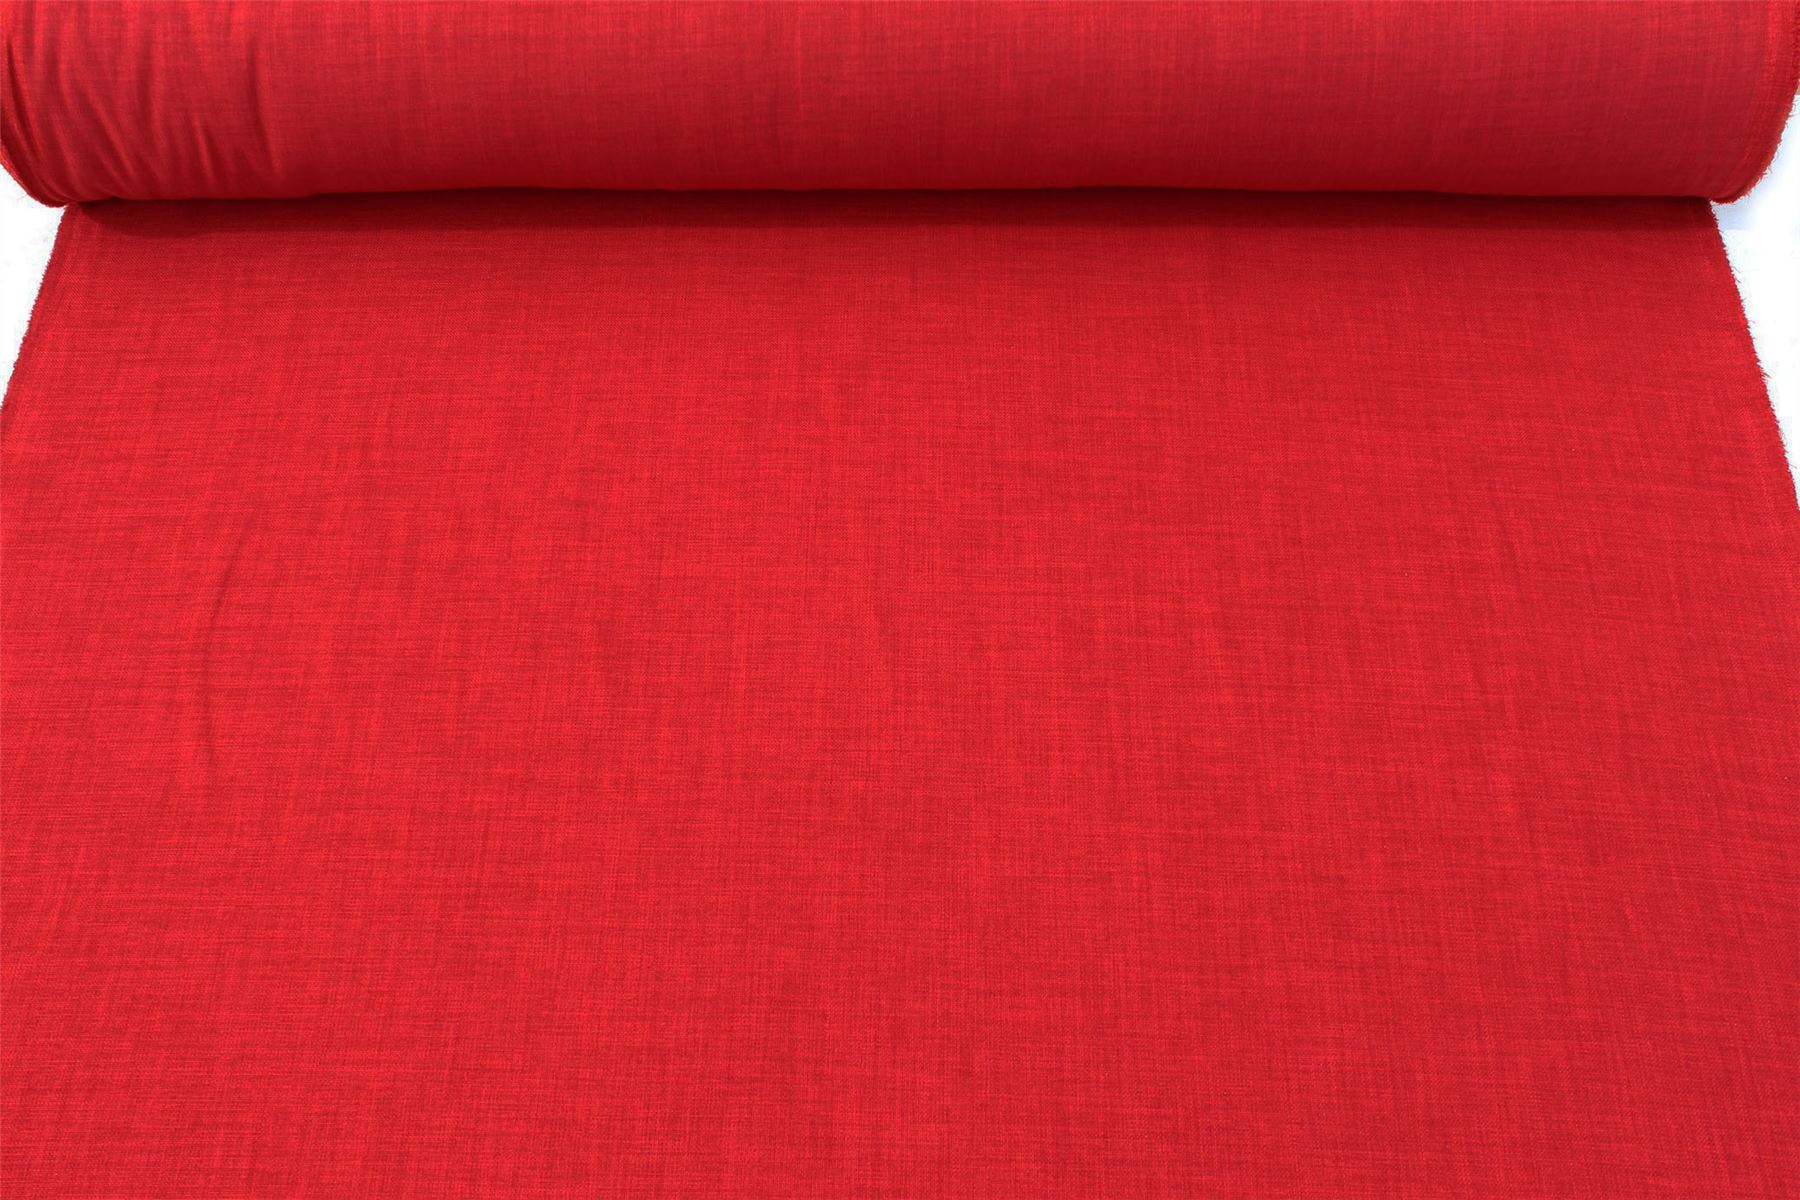 soft sofa material corner bed with high back plain linen look designer curtain cushion